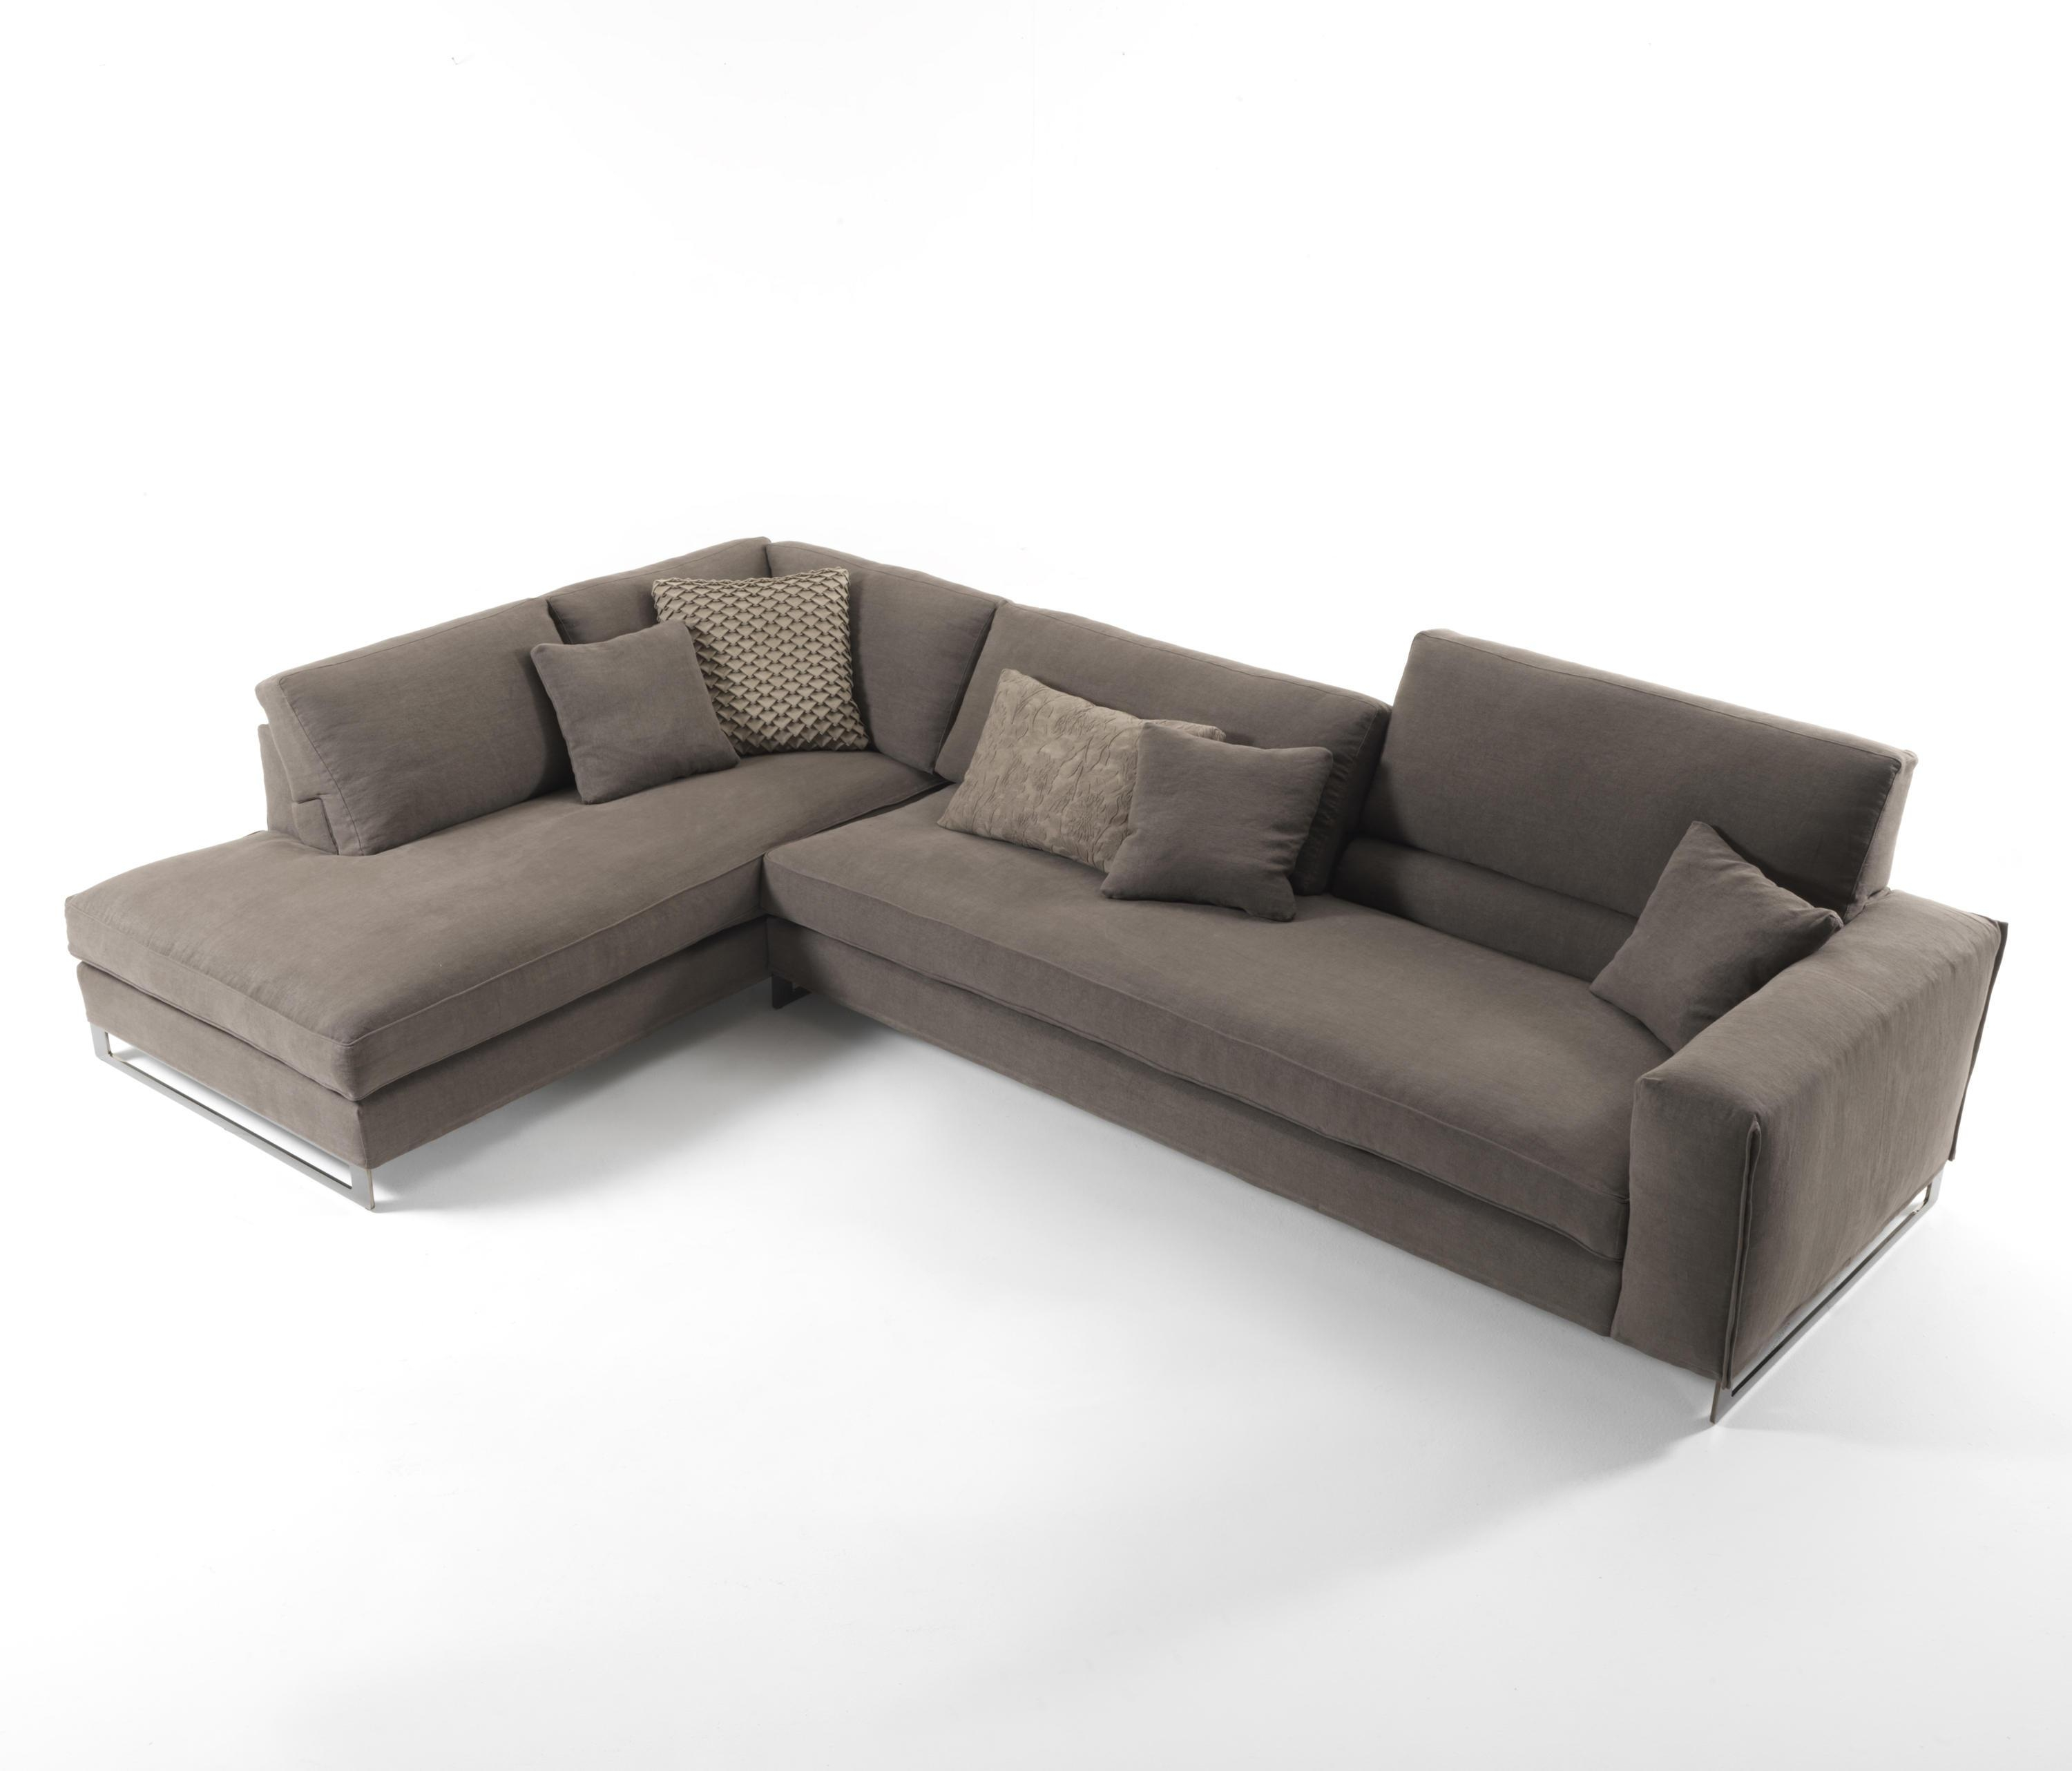 Davis Twin – Sofas From Frigerio | Architonic Throughout Davis Sofas (View 20 of 20)